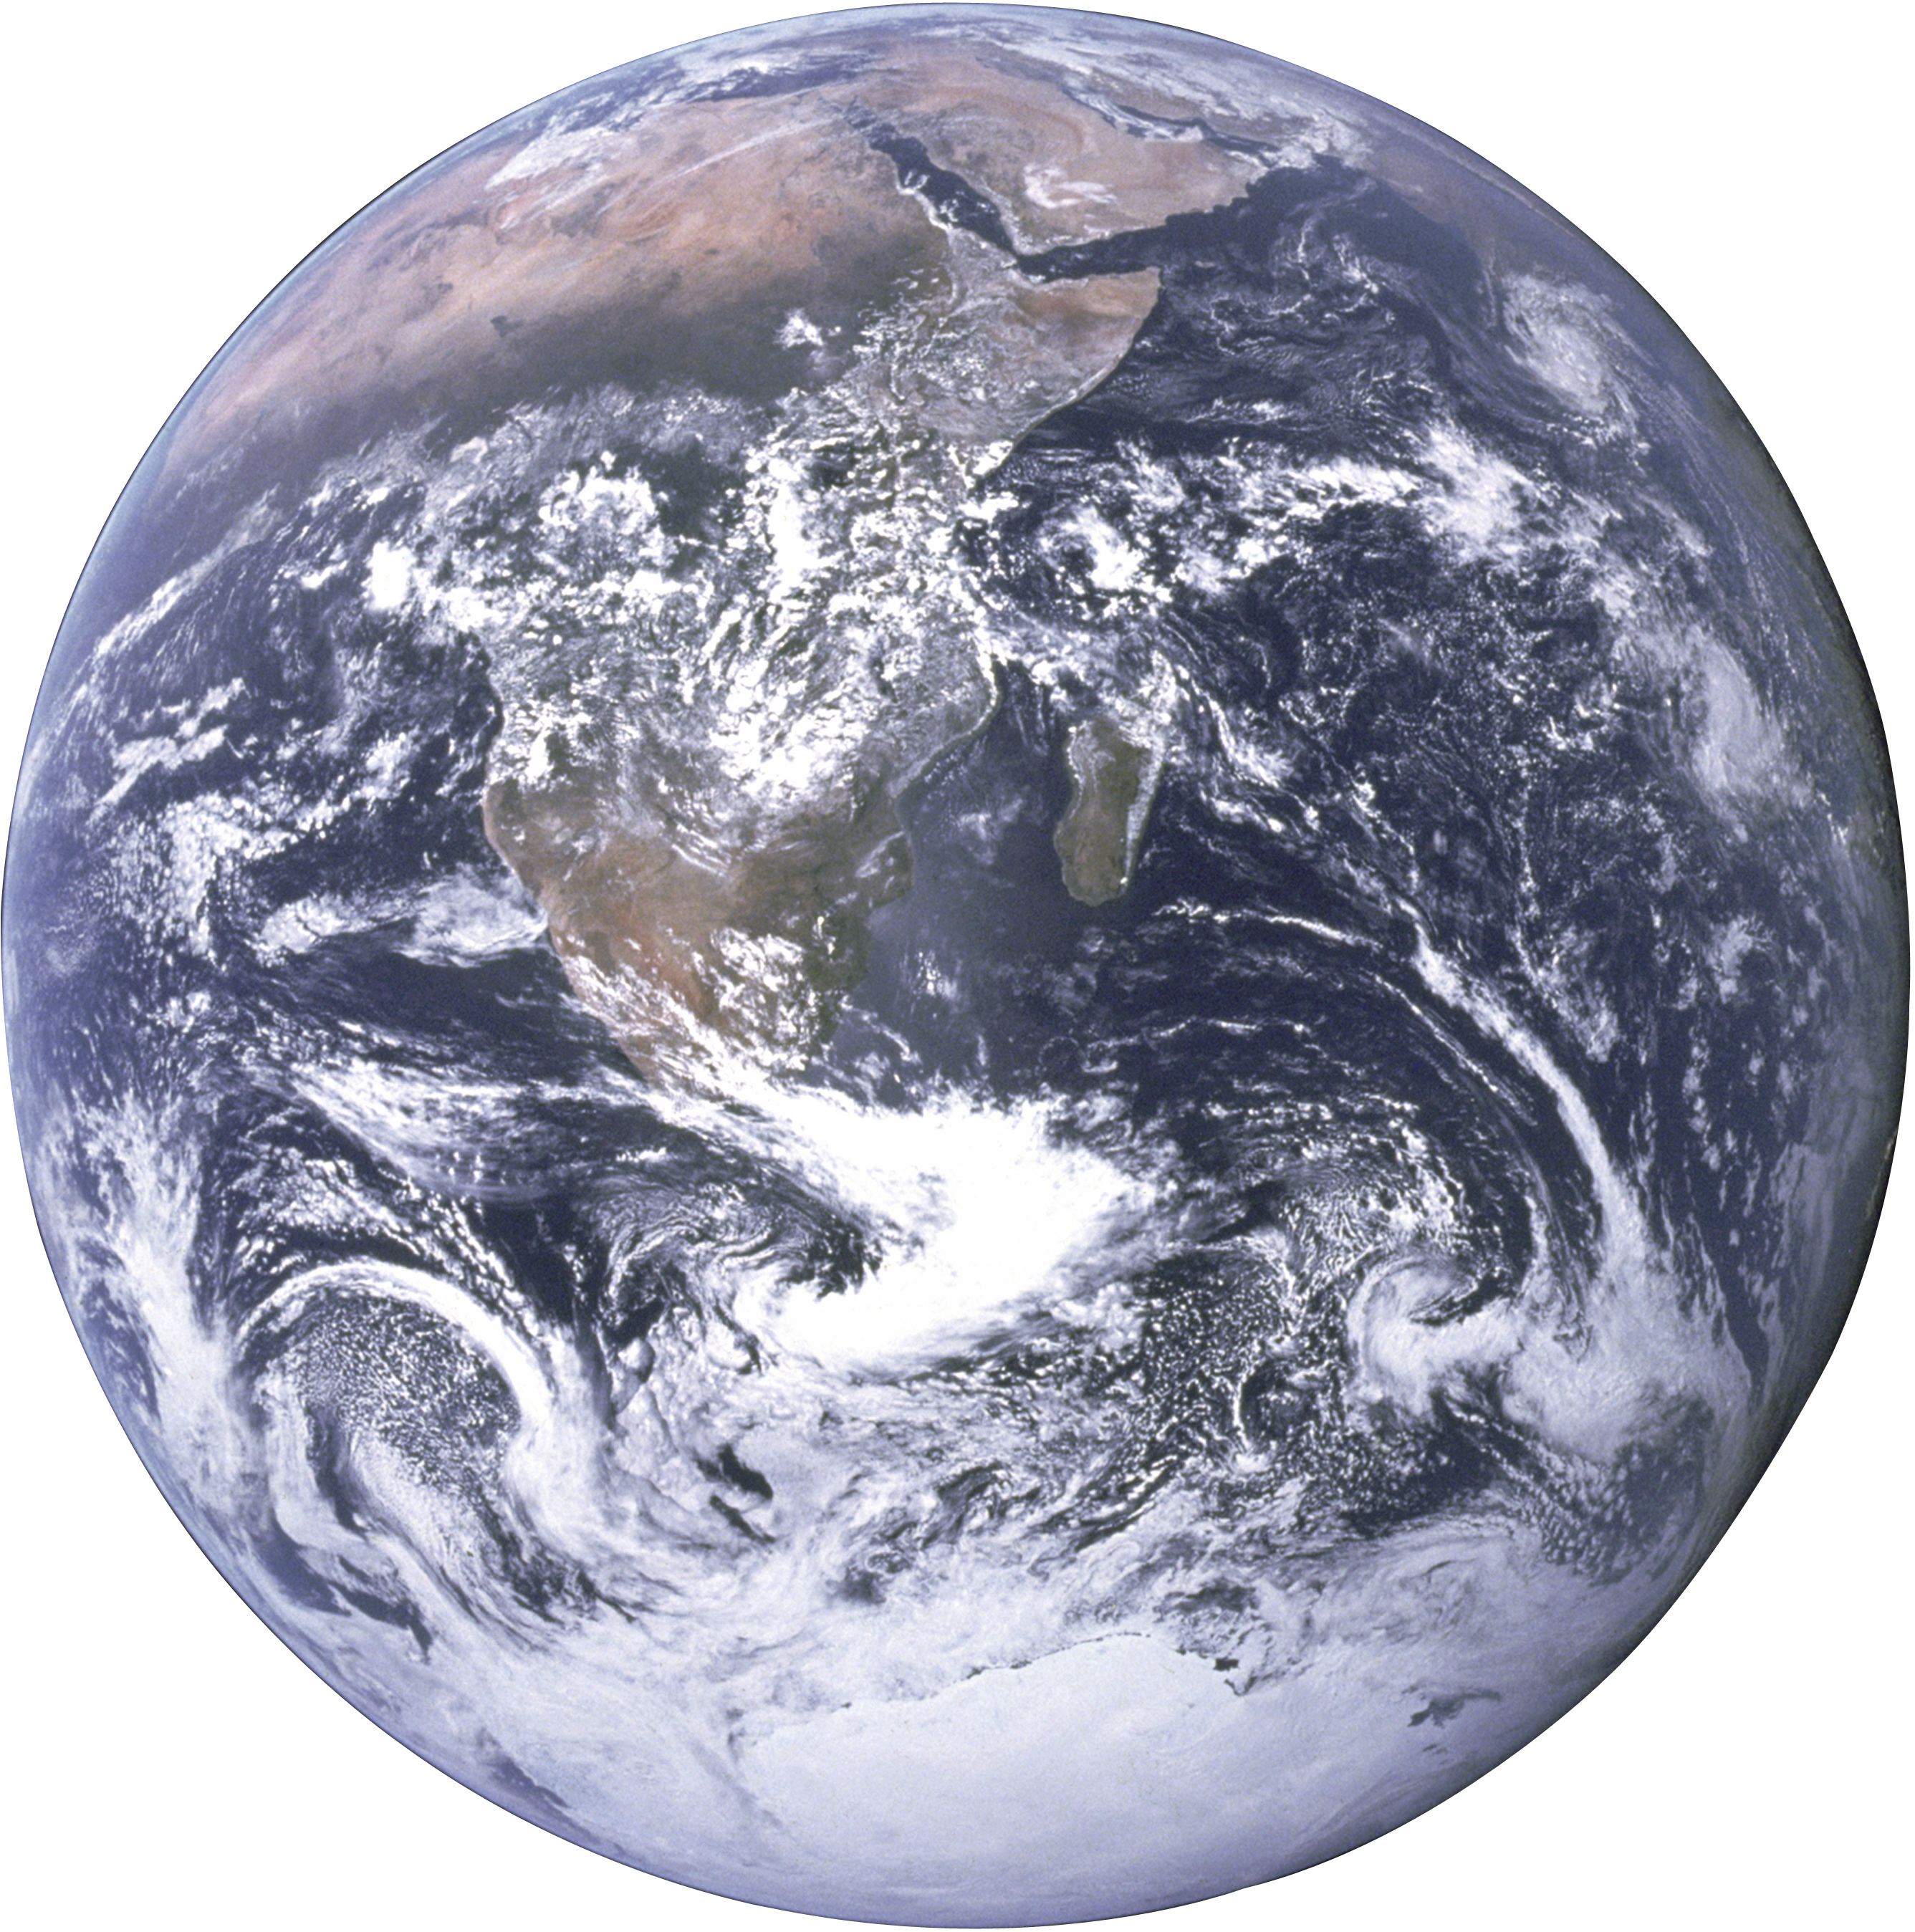 Transparent earth clipart - Earth Clipart Png - Earth Transparent Back